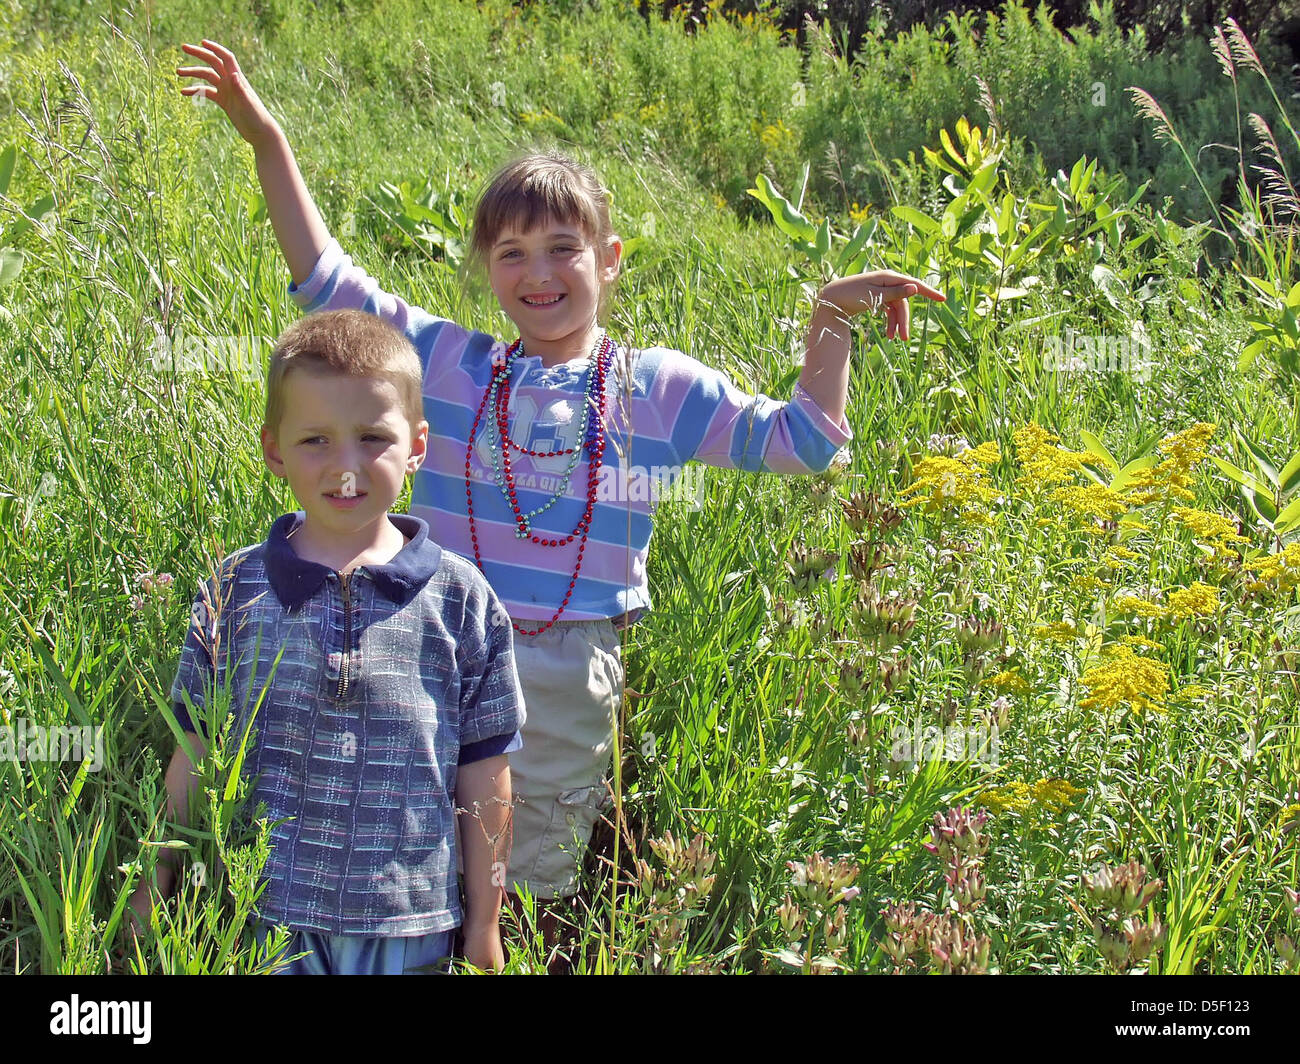 Two Children; a 4 year old Boy and a 6 year old girl, are playing in a field of yellow flowers near their farm in Stock Photo